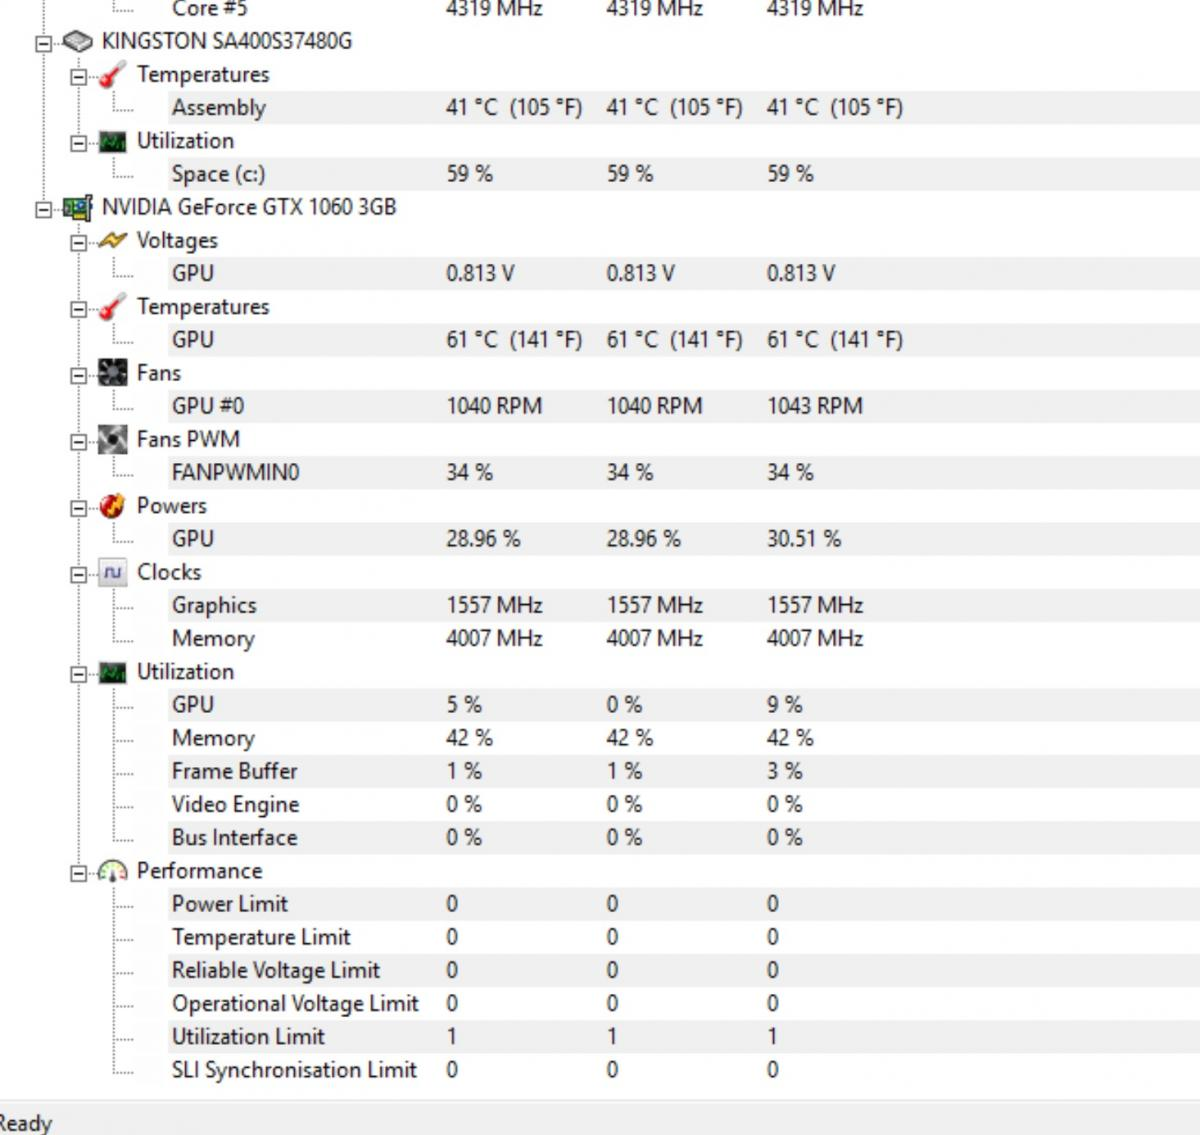 Random 100% SSD Freezes - Hardware, Components and Peripherals